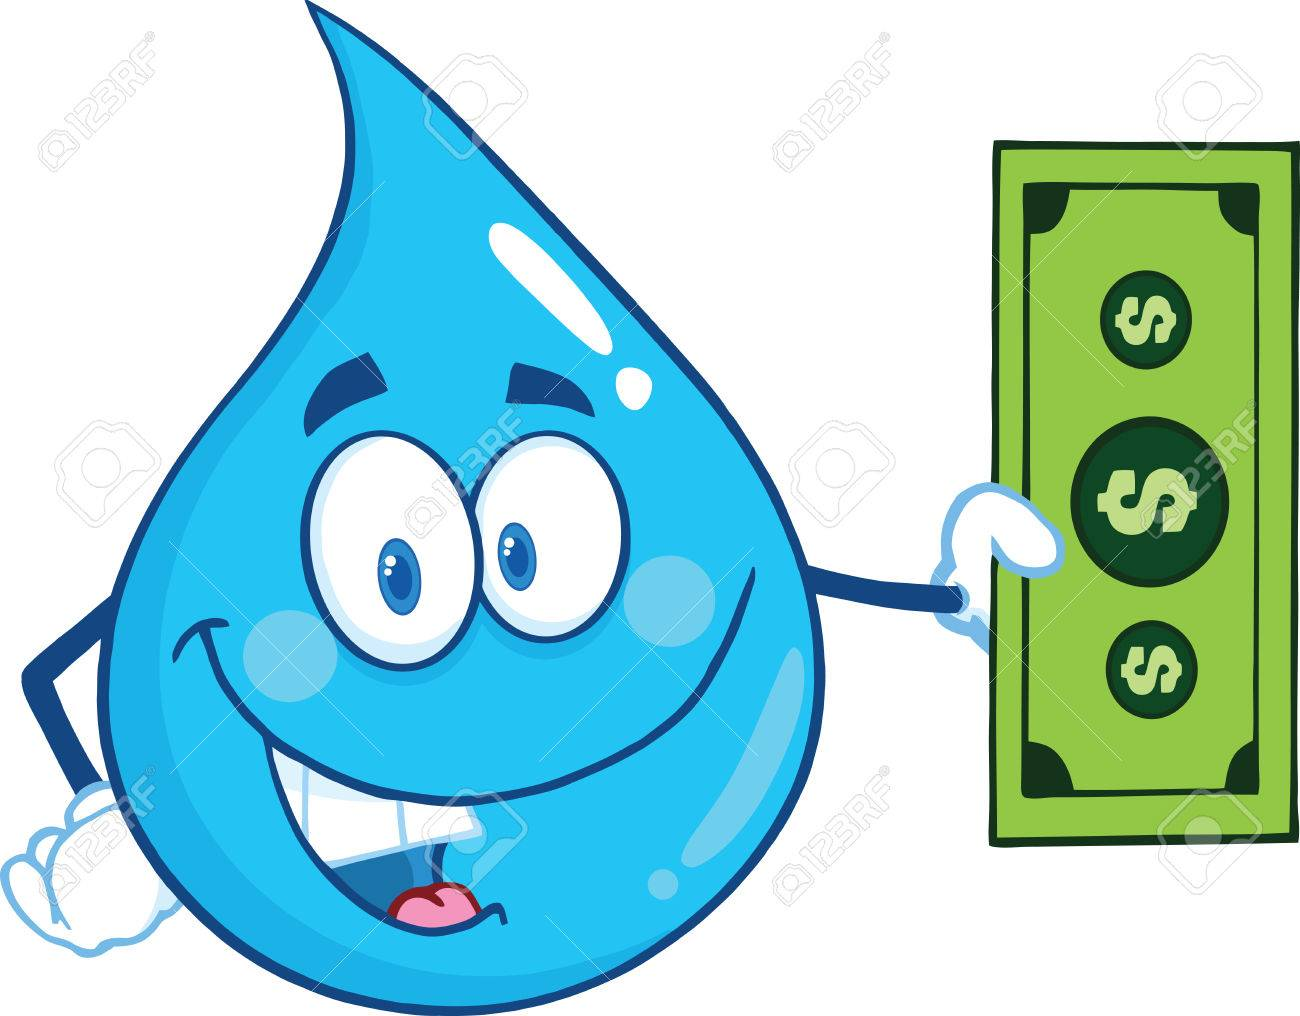 hight resolution of vector water drop character showing a dollar bill illustration isolated on white background